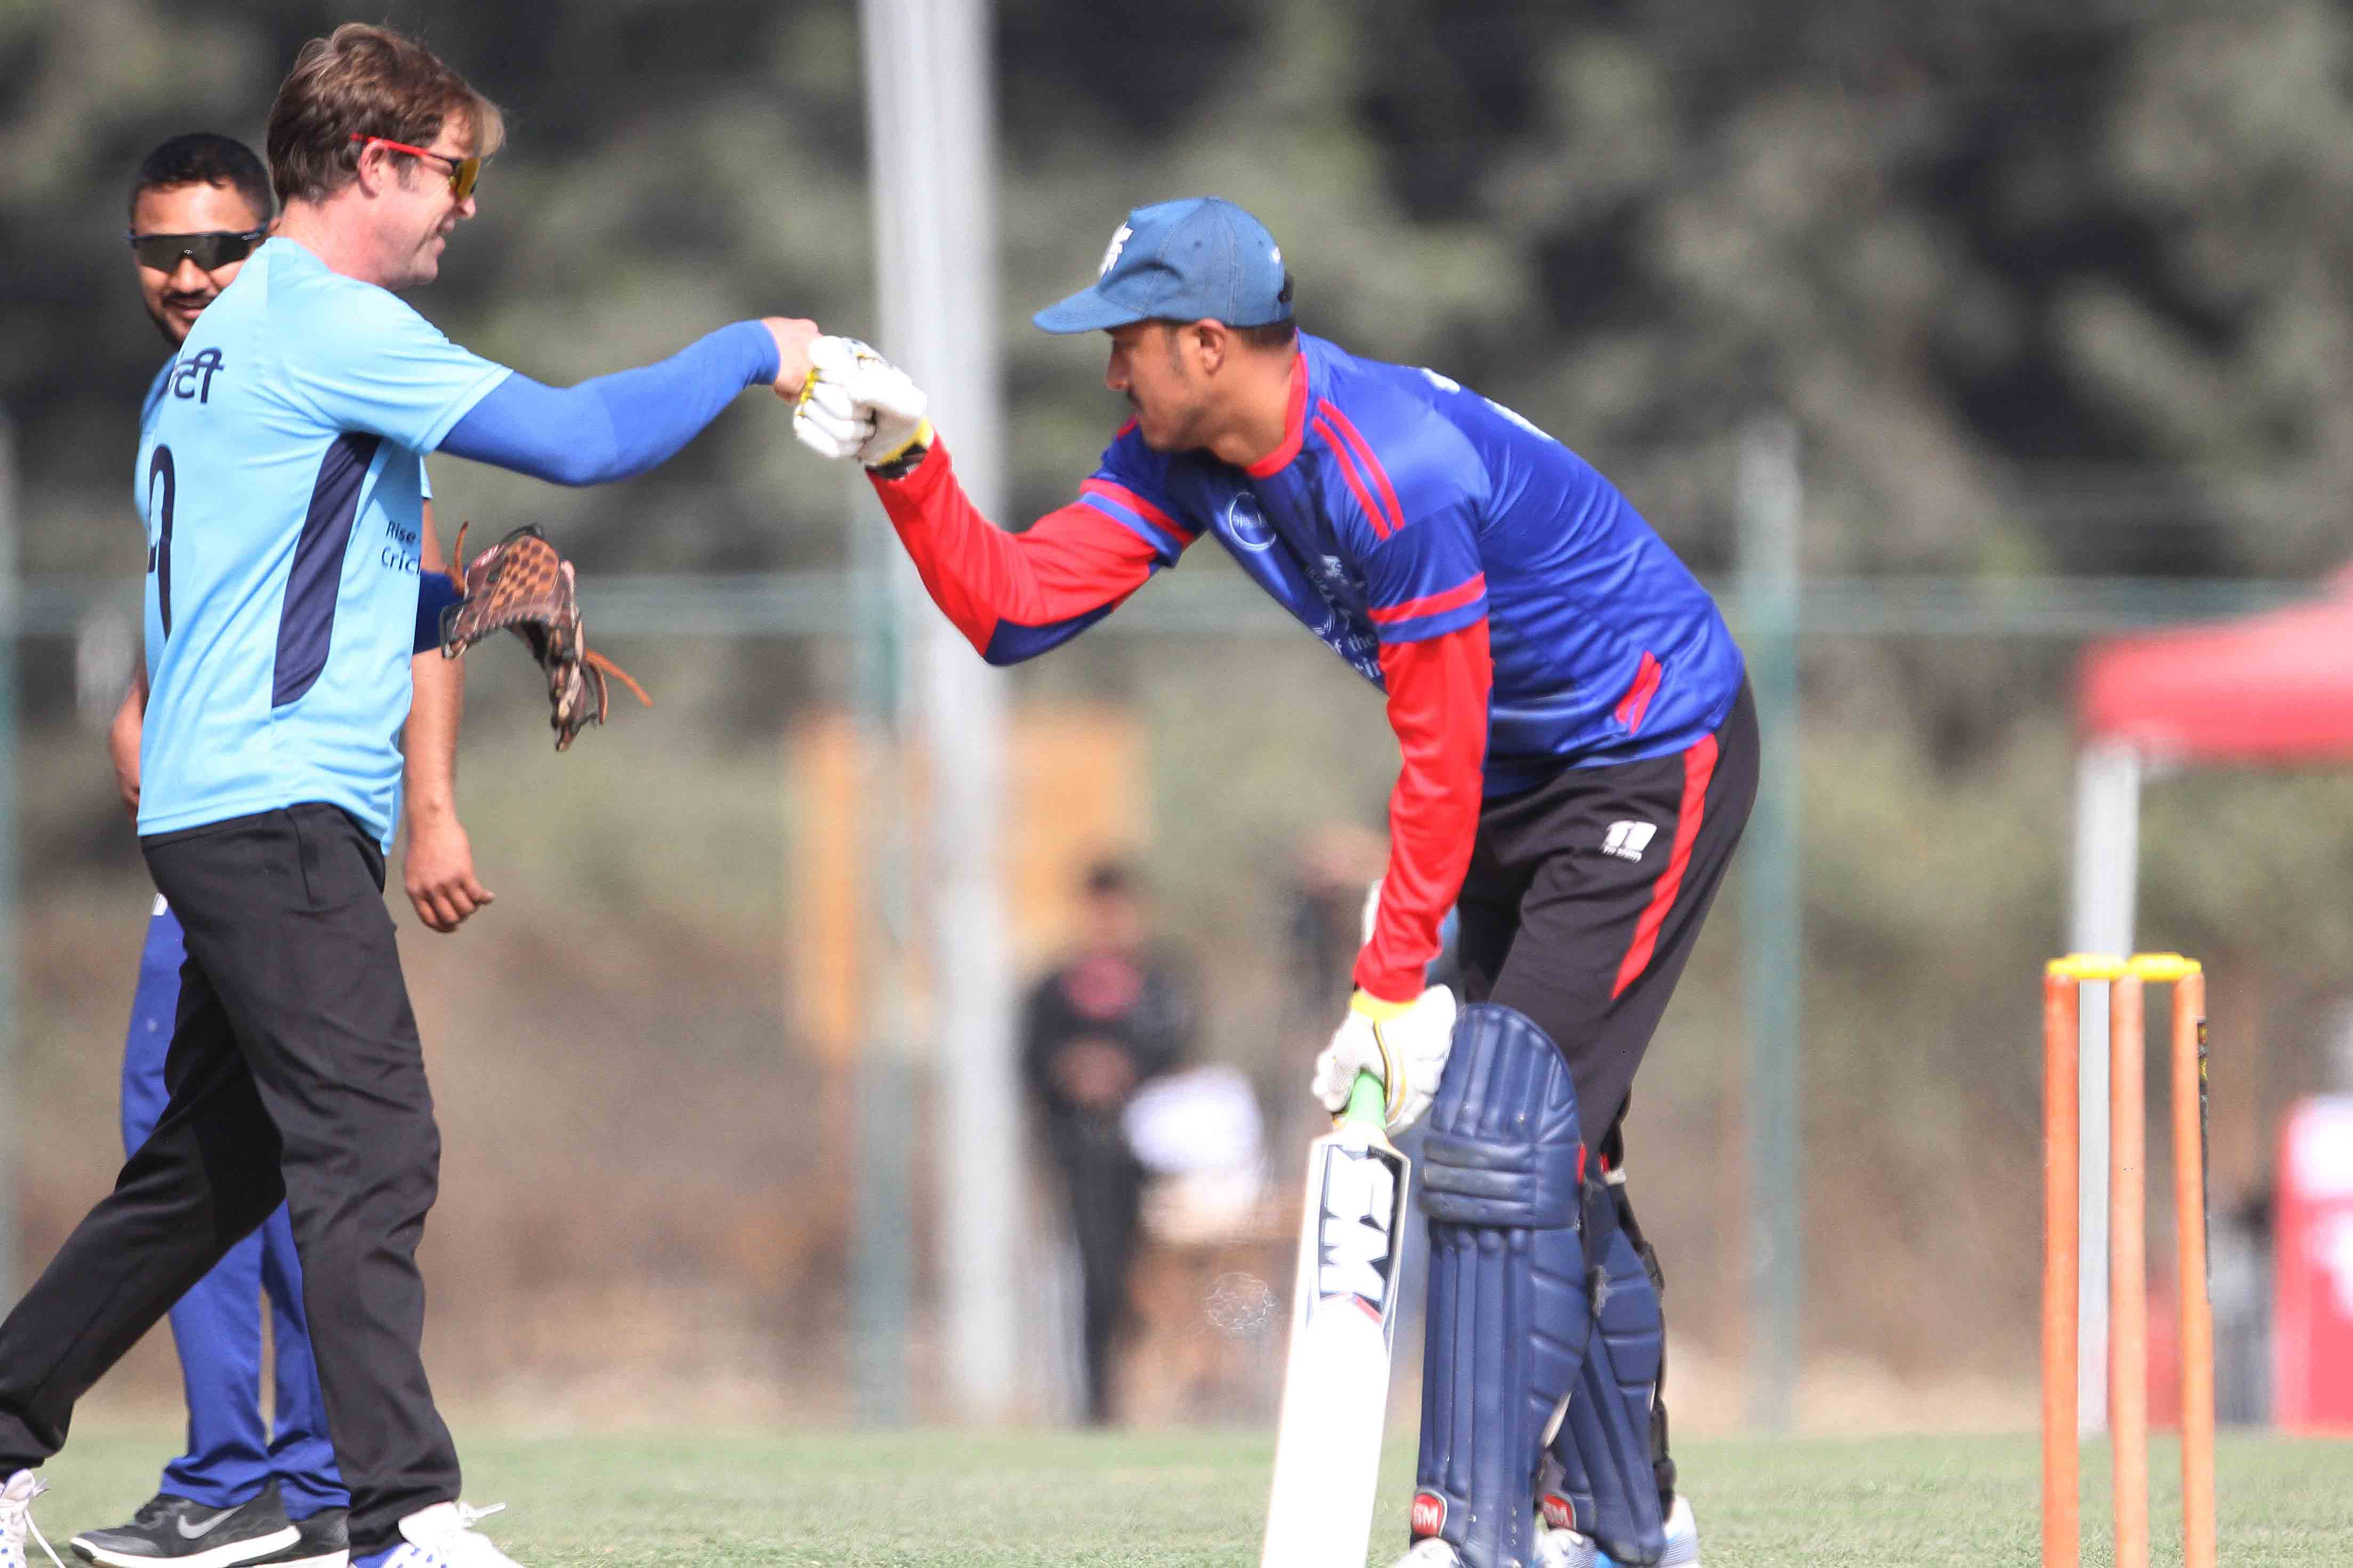 Jonty Rhodes (left) legendary South African cricketer of Jonty 11 toss hands with skipper Paras Khadka of Paras11 during charity cricket match at TU Cricket Stadium in Kirtipur on Saturday. Photo: Udipt Singh Chhetry